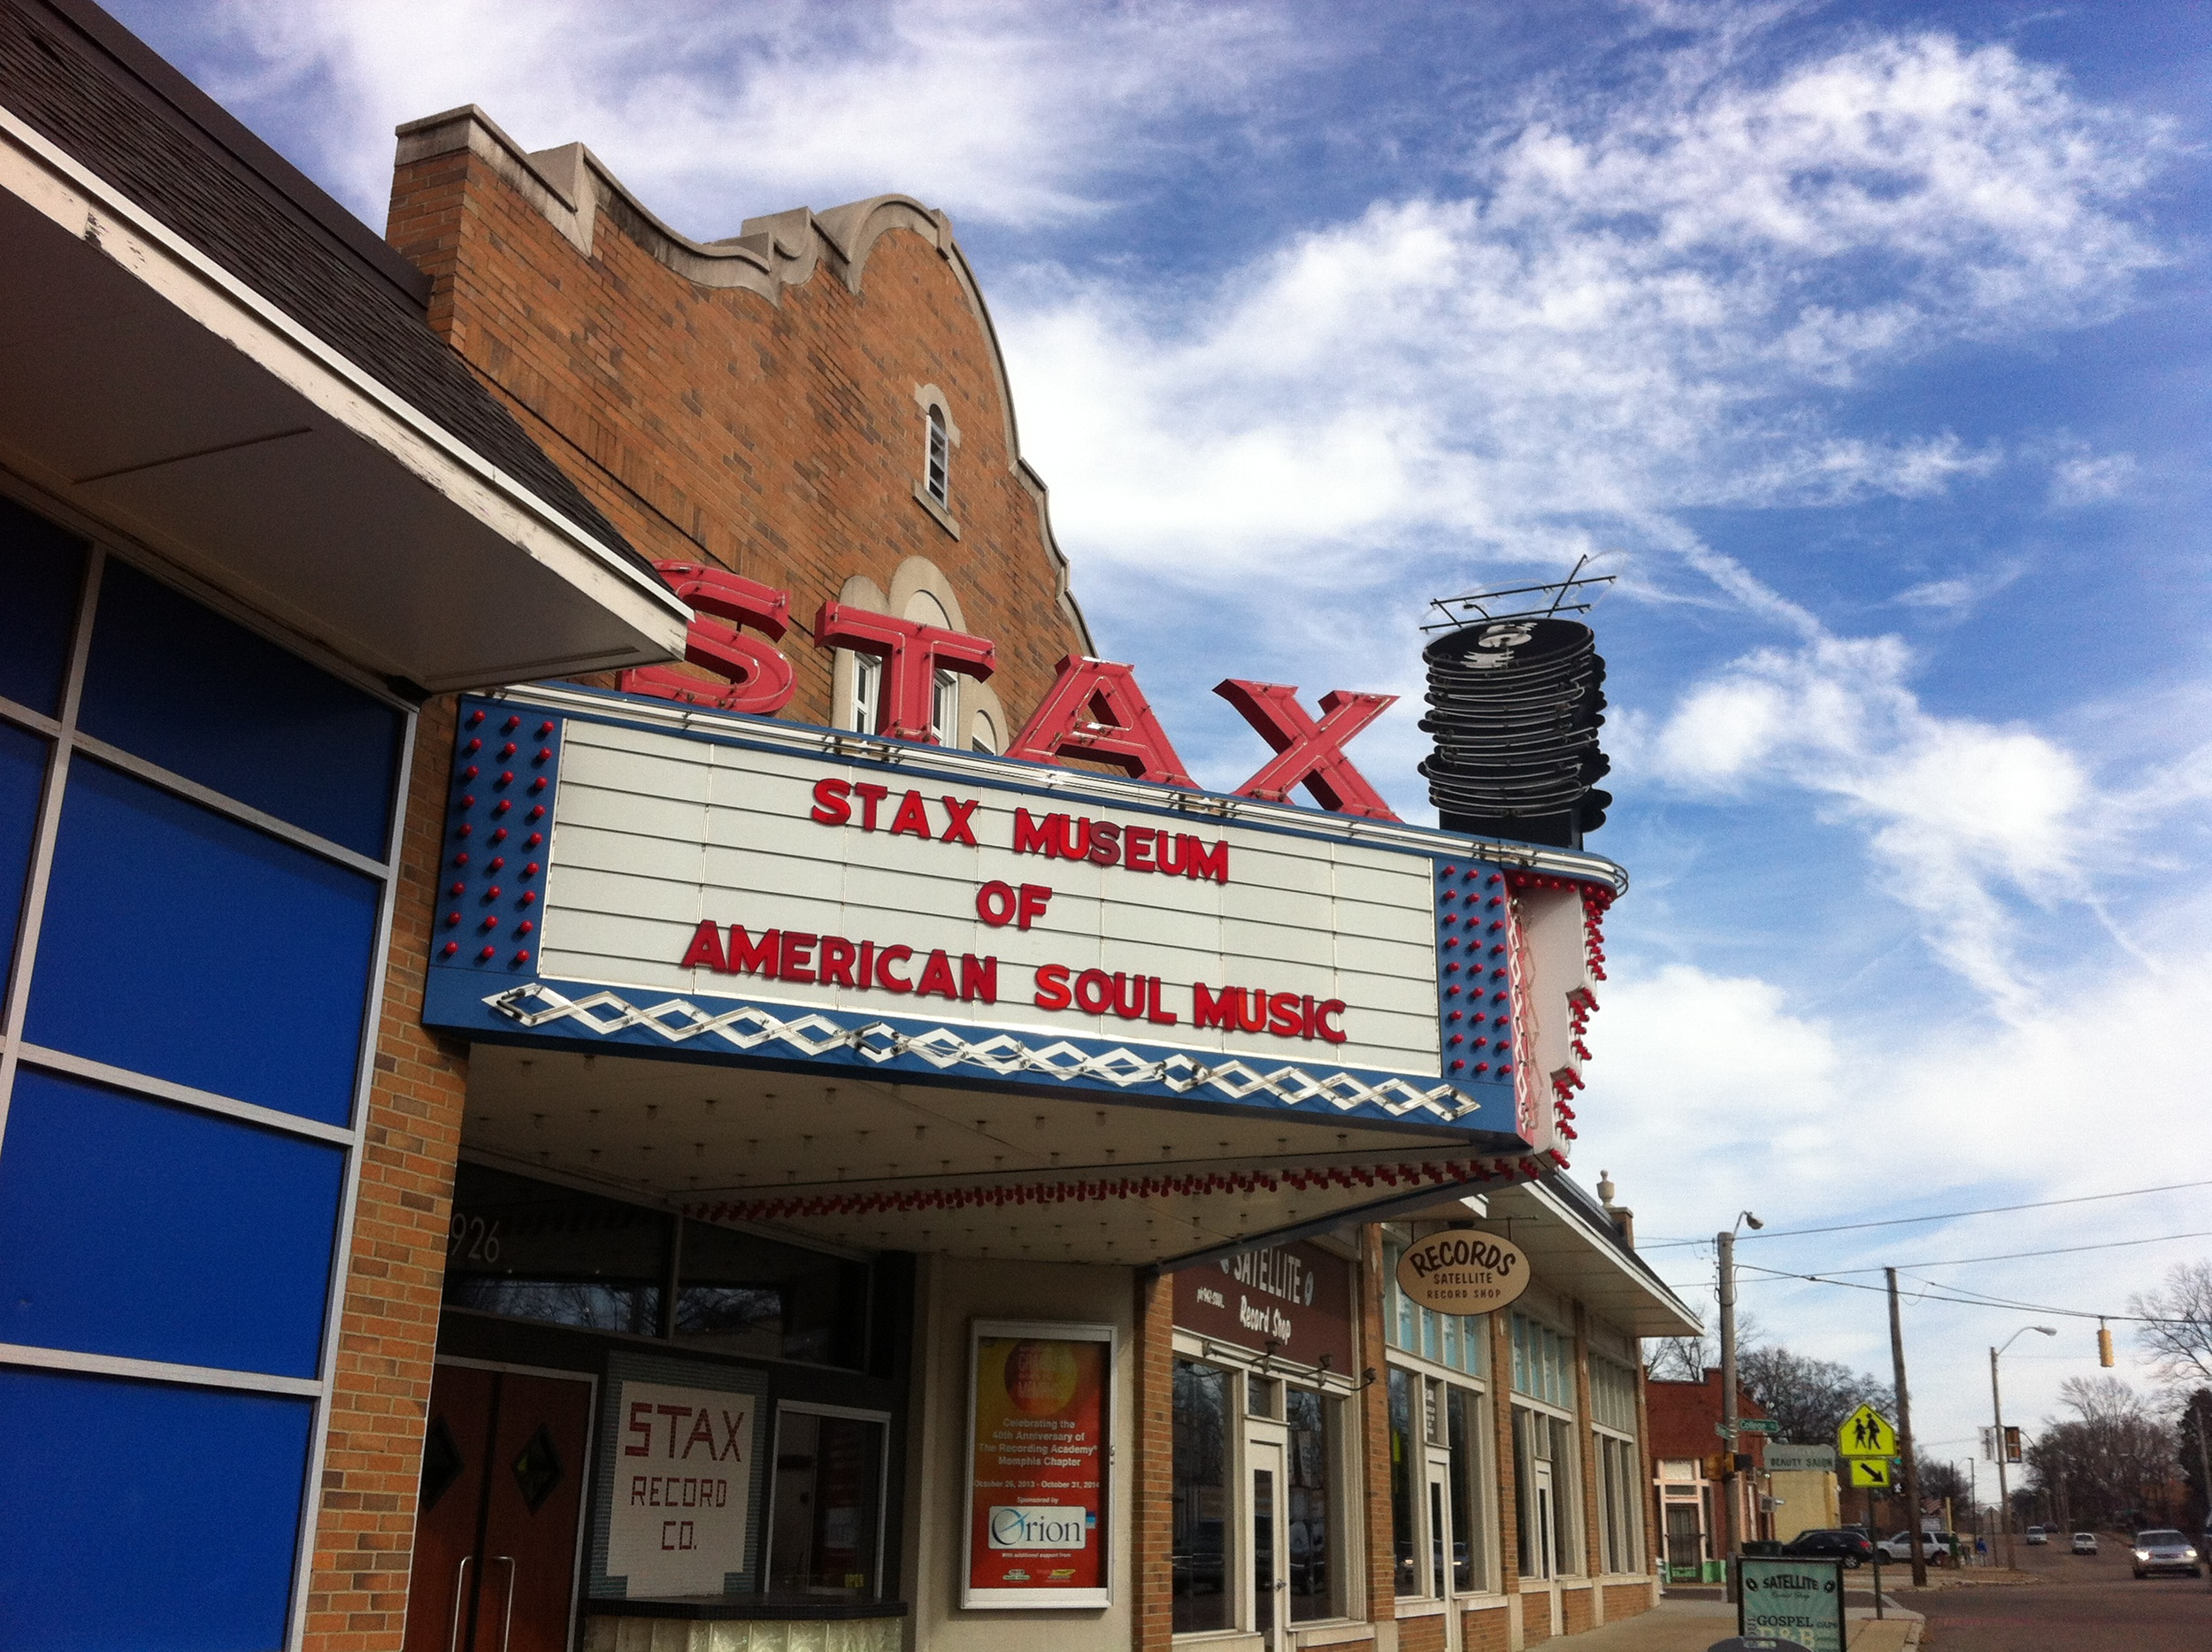 The STAX Museum tells the most comprehensive story of 20th century music in a fun and engaging manner.